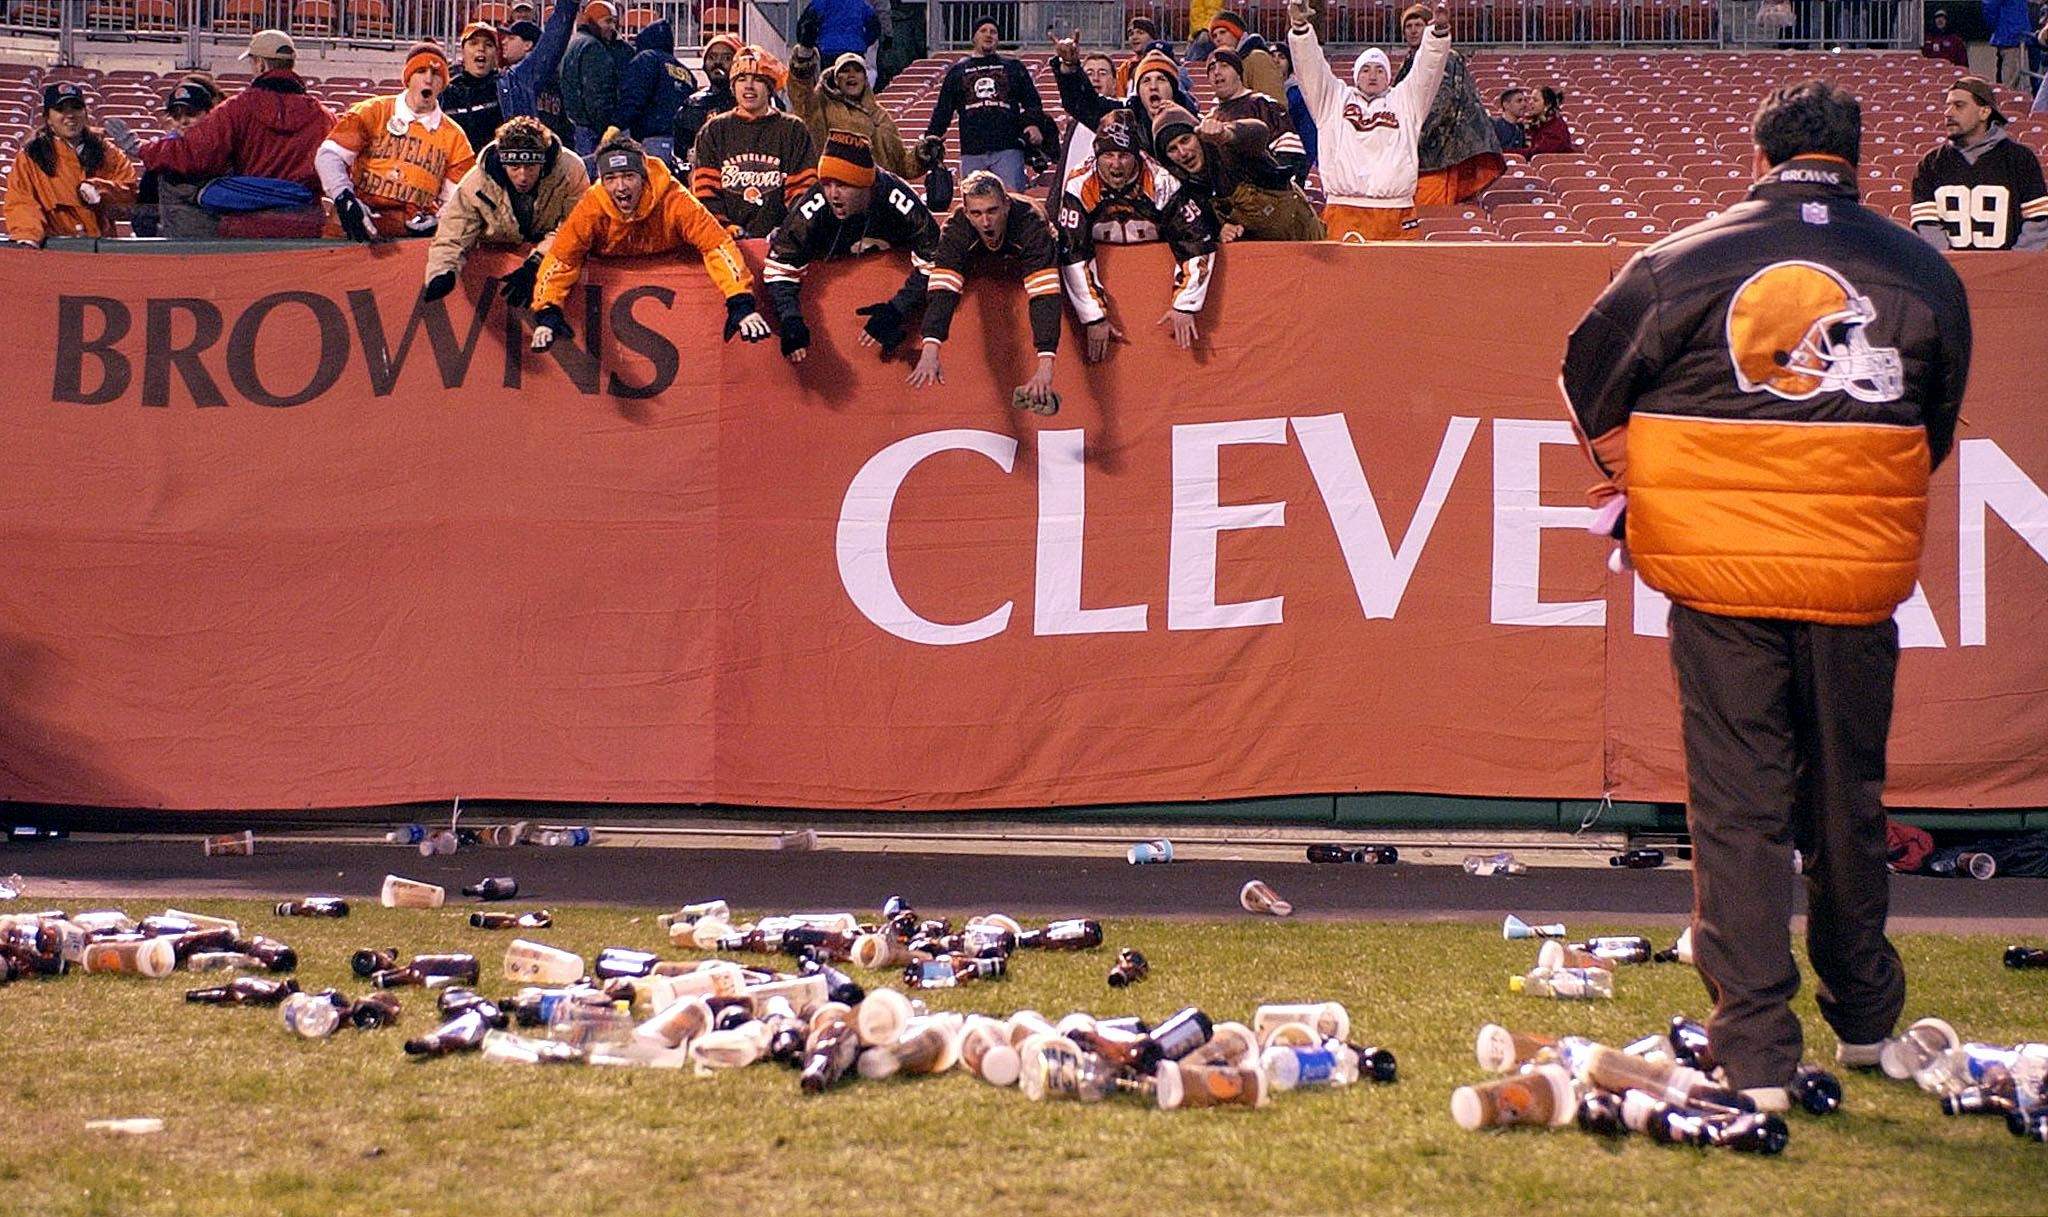 CLEVELAND, UNITED STATES: Bottles and debris litter the field at Cleveland Browns Stadium in Cleveland, Ohio, as frustrated Brown fans defy a referee's call during the Cleveland Browns-Jacksonville Jaguars NFL game 16 December, 2001. Fans began to throw beer bottles and debris onto the field after a first-down catch by the Browns was reversed and the ball given to the Jacksonville Jaguars with 48 seconds left in the game. Officials stopped the game, but later brought both teams back to play the remaining 48 seconds. Jacksonville defeated Cleveland 15-10. AFP Photo/David Maxwell (Photo credit should read DAVID MAXWELL/AFP/Getty Images)